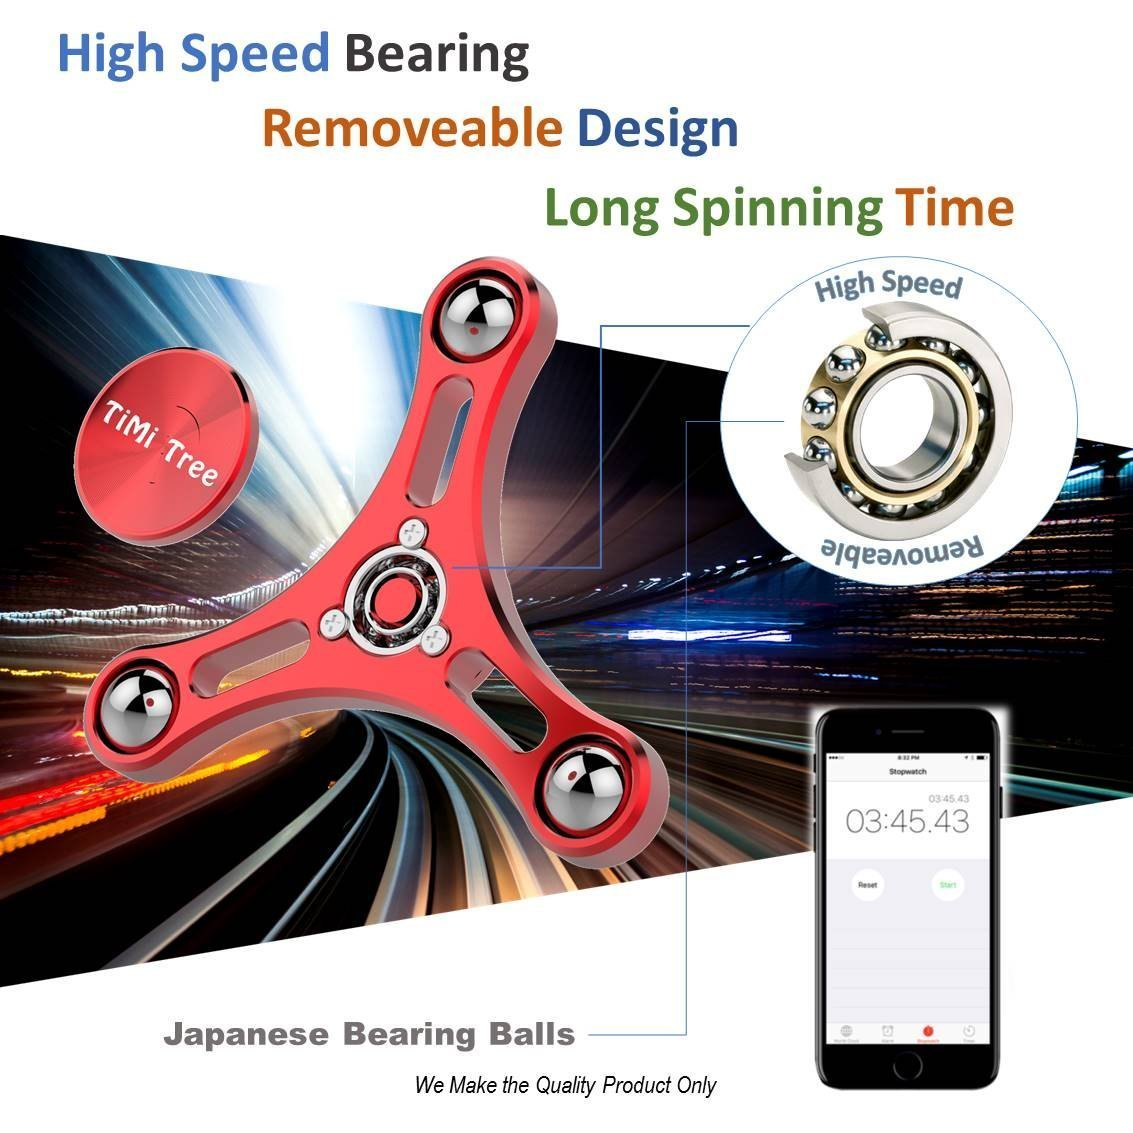 Fidget spinner metal easter gift cool toys under 10 dollars for fidget spinner metal easter gift cool toys under 10 dollars for teen boys novelty gifts flick tricks unique game for adults and 9 to 20 years old teen negle Images